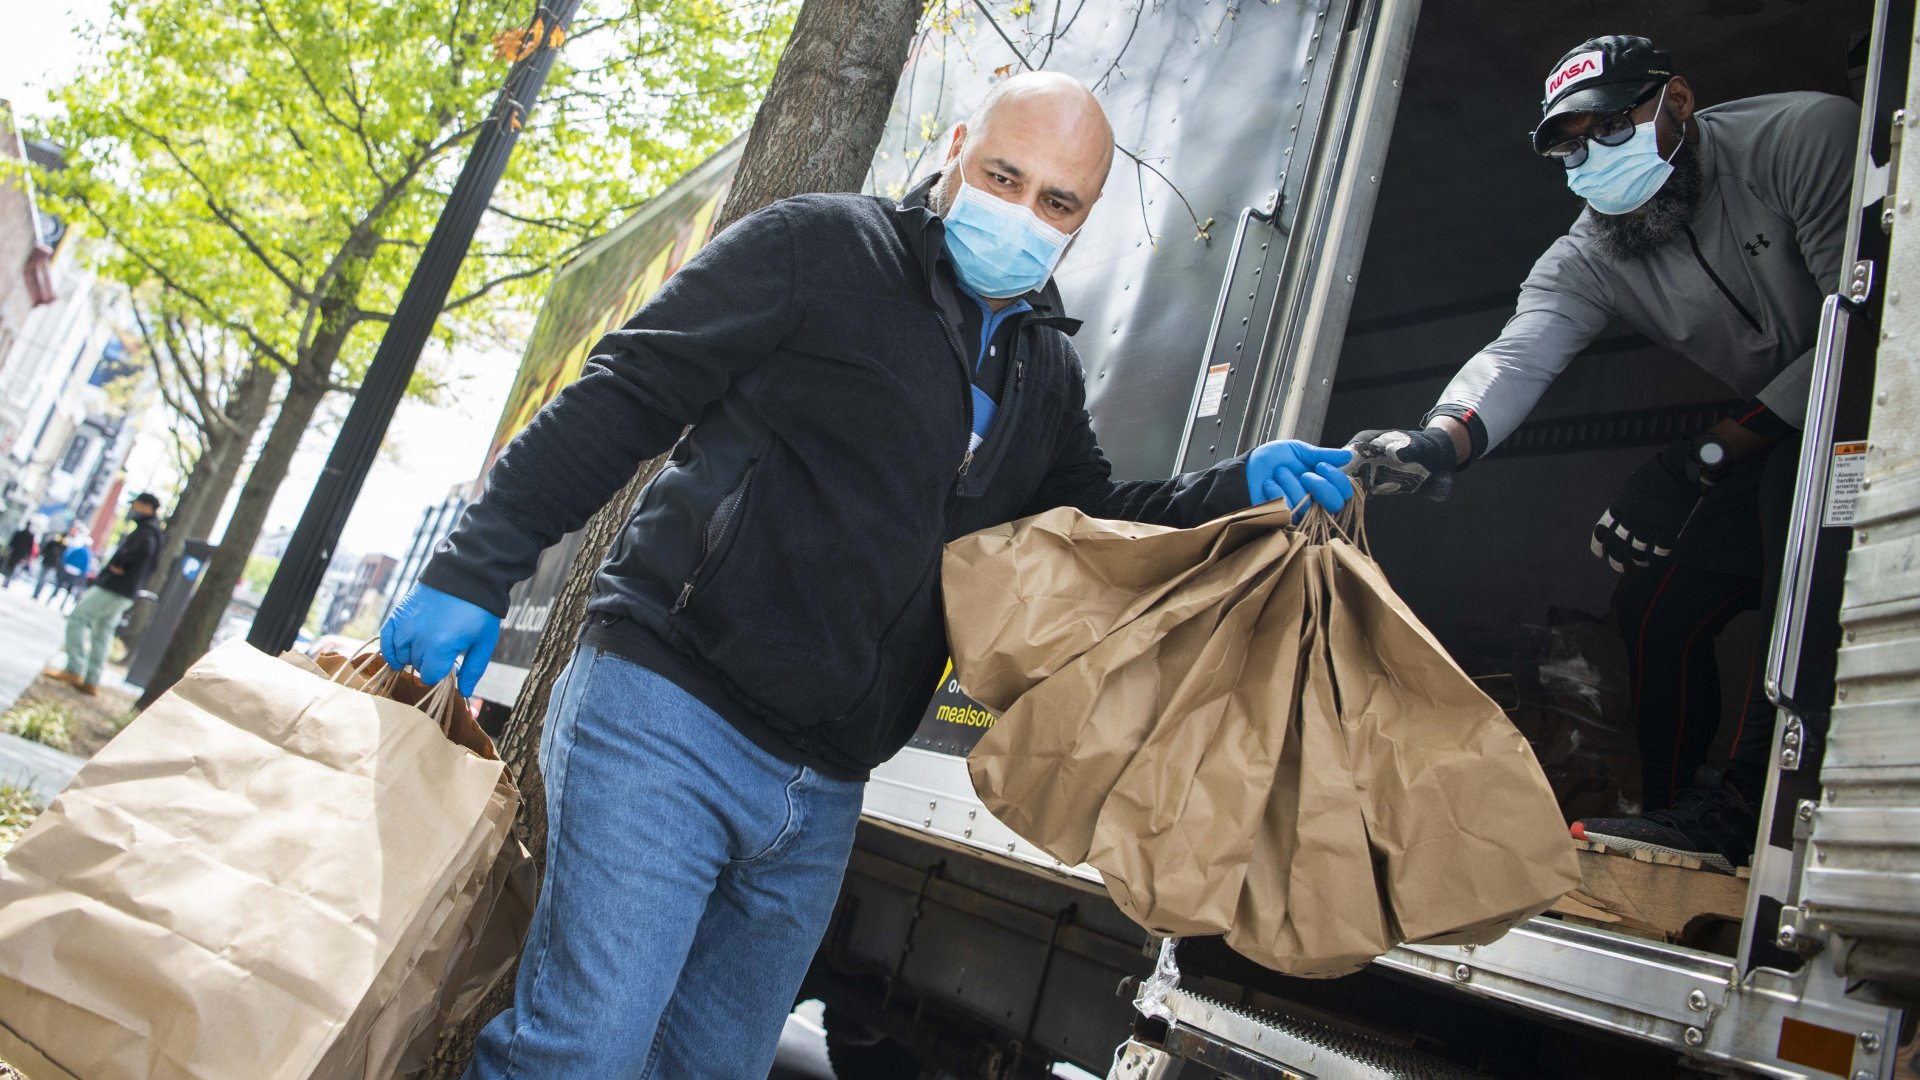 3 Ways Companies Have Shown Corporate Social Responsibility During the Pandemic